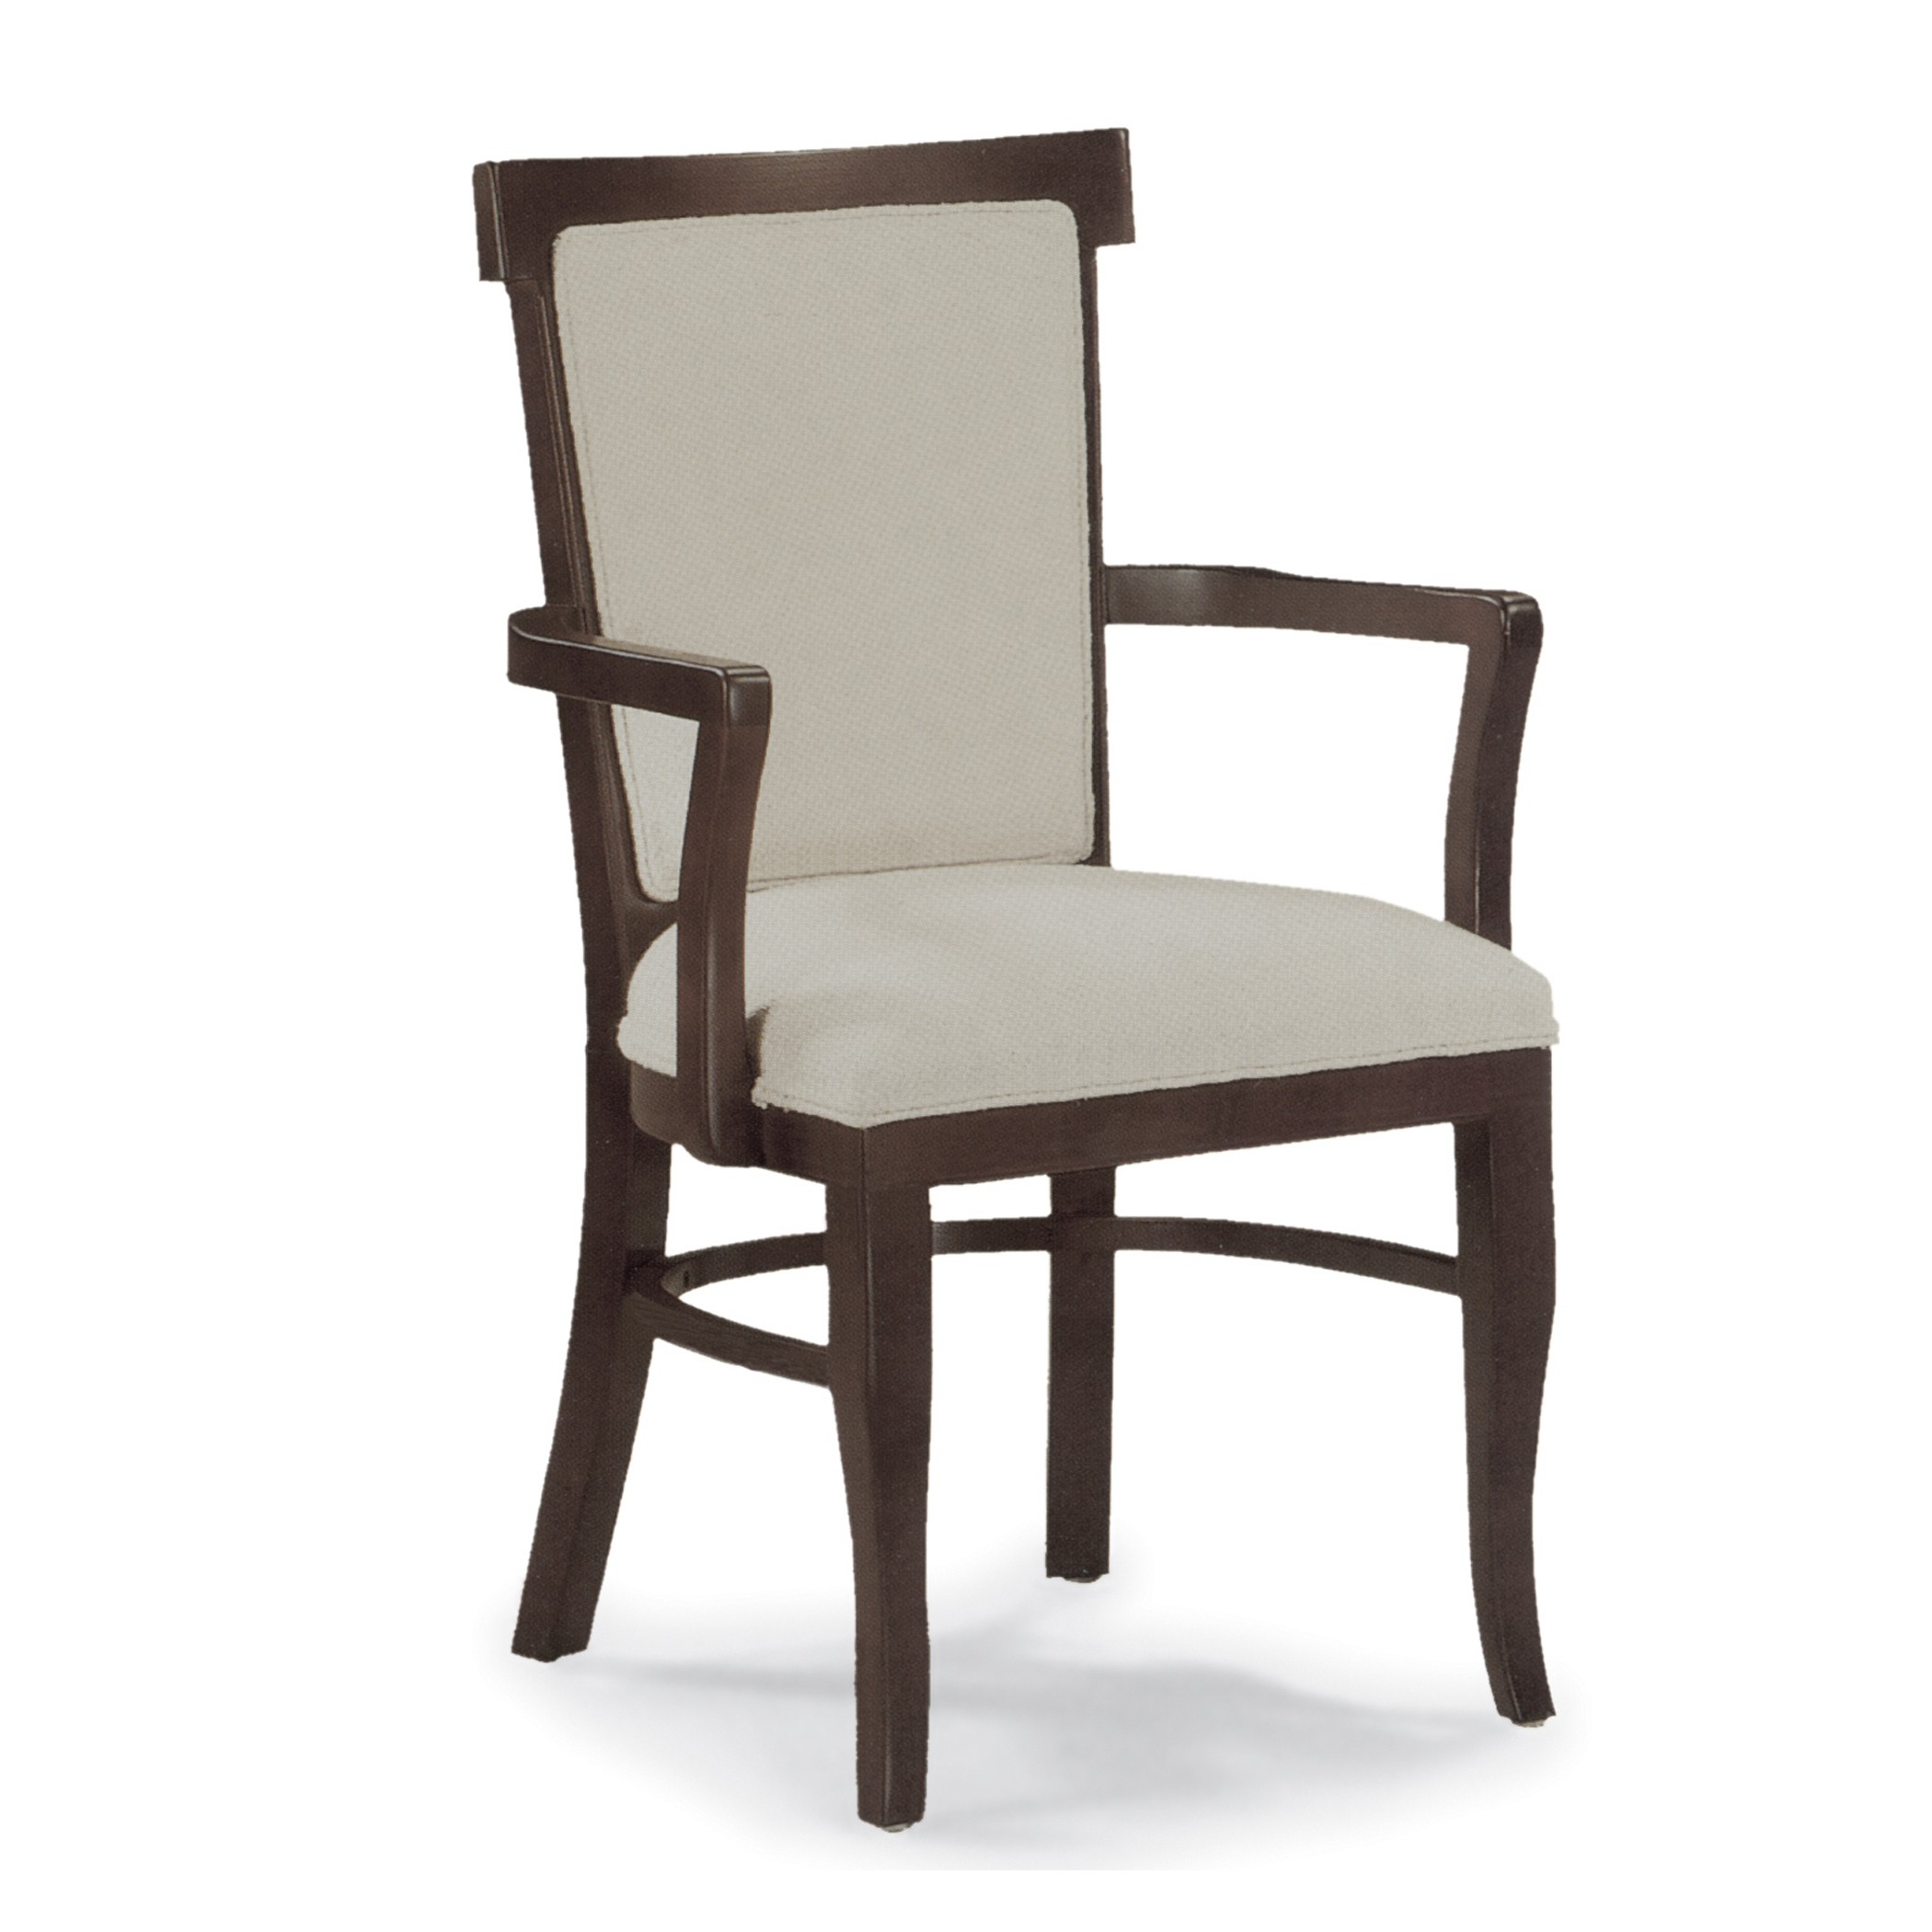 Superbe All Wood Chairs Wood Arm Chair G5006